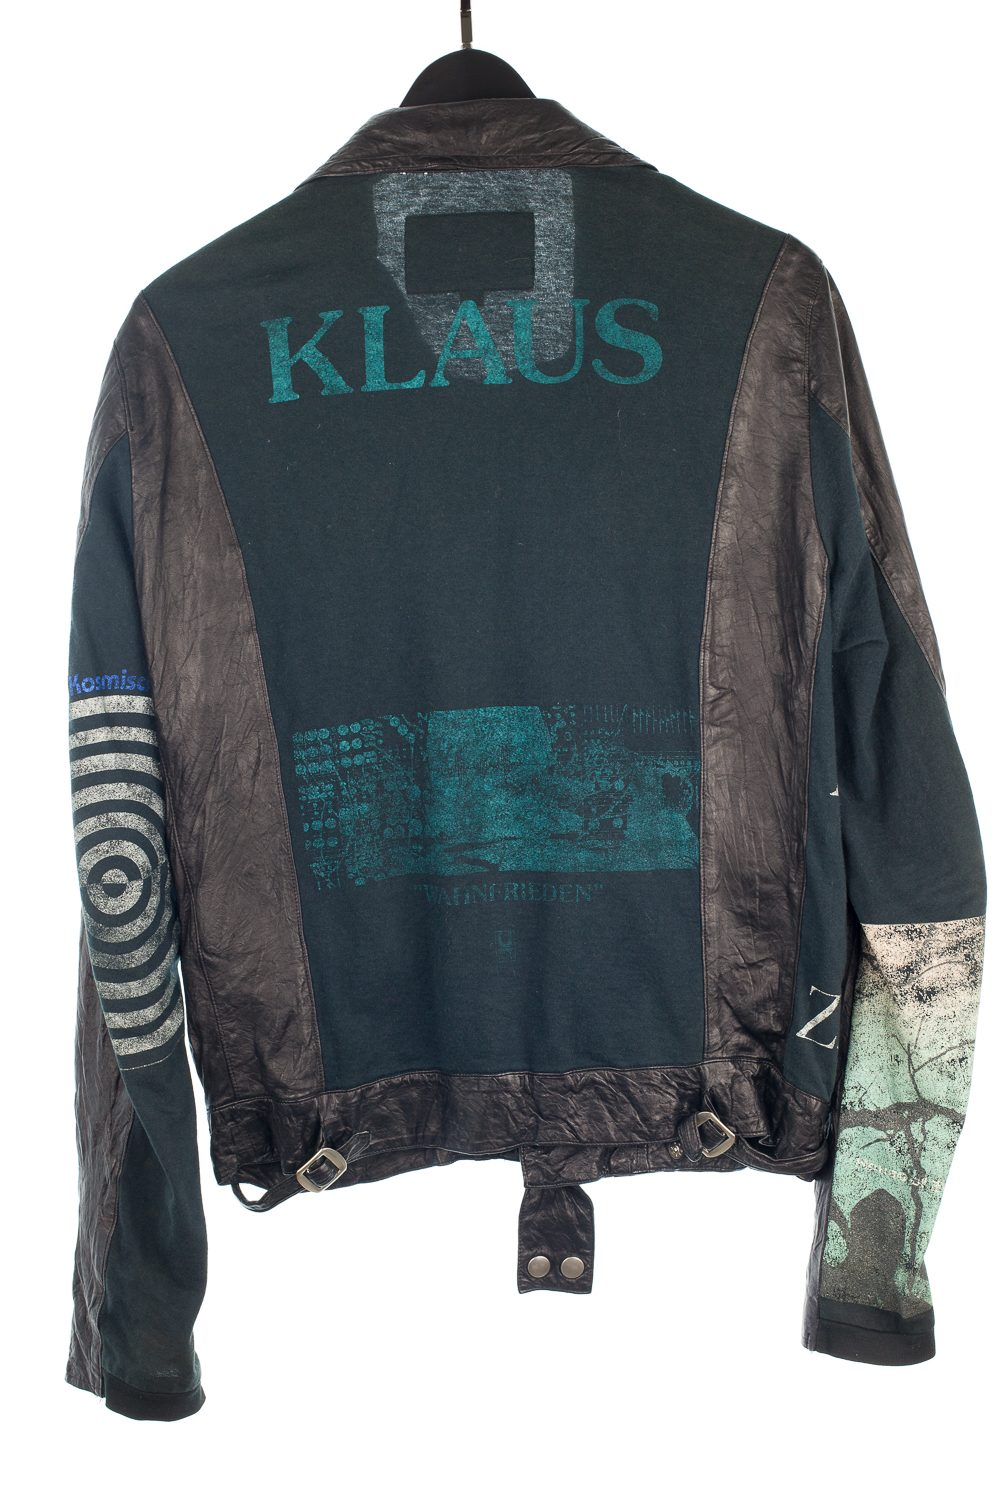 SS06 Klaus/Zamiang Reconstructed Leather Jacket